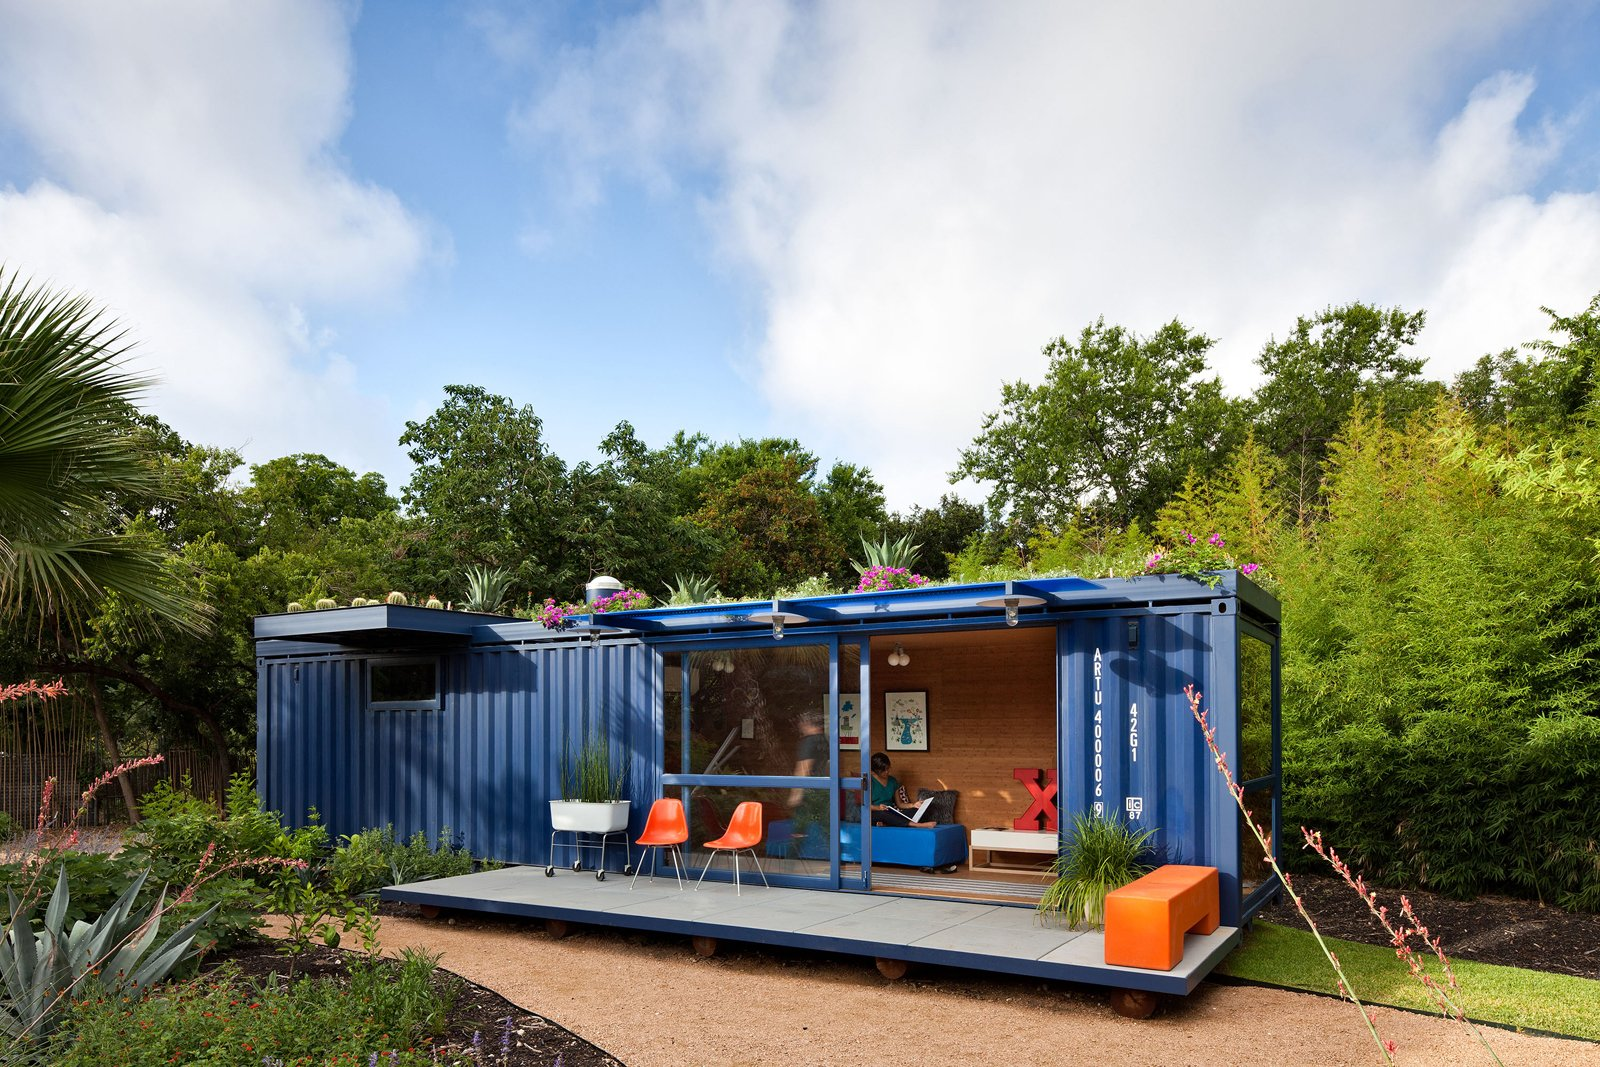 """Outdoor, Small Patio, Porch, Deck, Walkways, Grass, and Gardens """"In the beginning I really wanted the container to be off the grid but solar is still very expensive in San Antonio, especially for small spaces,"""" says Hill. """"The green roof was an element that I had not thought of at the beginning, but as it turns out saves me more money on air-conditioning than the solar would have, and is a lot prettier.""""  Photo 2 of 10 in 9 Small Spaces With  Color from Smaller in Texas"""